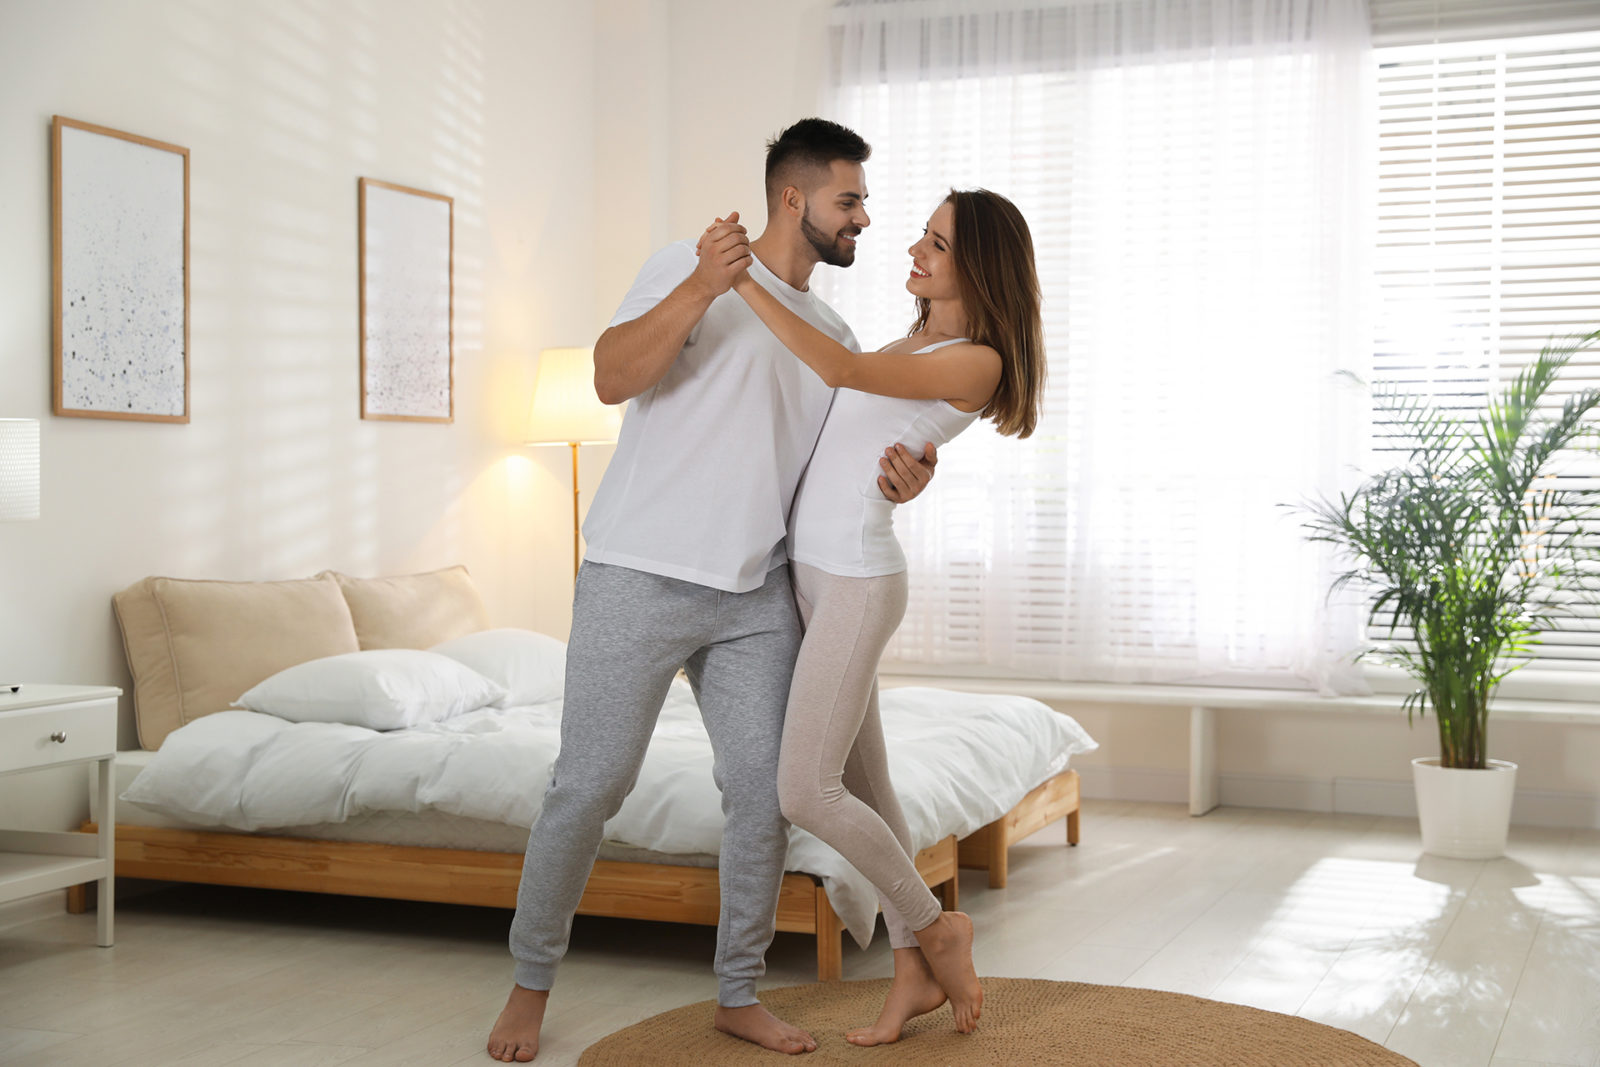 Lovely young couple dancing in bedroom at home